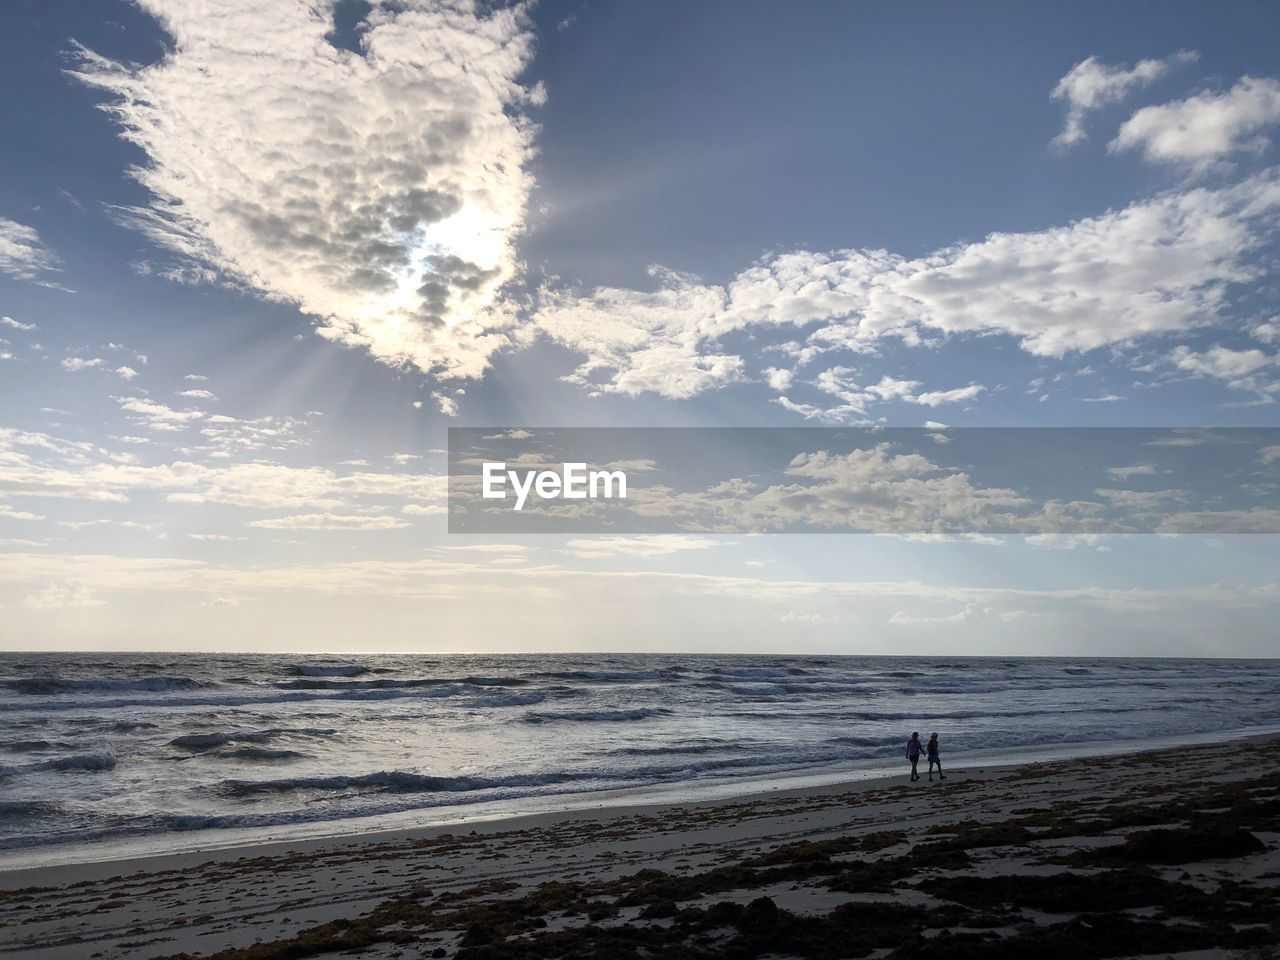 sea, sky, water, beach, cloud - sky, land, horizon over water, horizon, beauty in nature, scenics - nature, nature, real people, tranquility, men, tranquil scene, people, day, leisure activity, unrecognizable person, outdoors